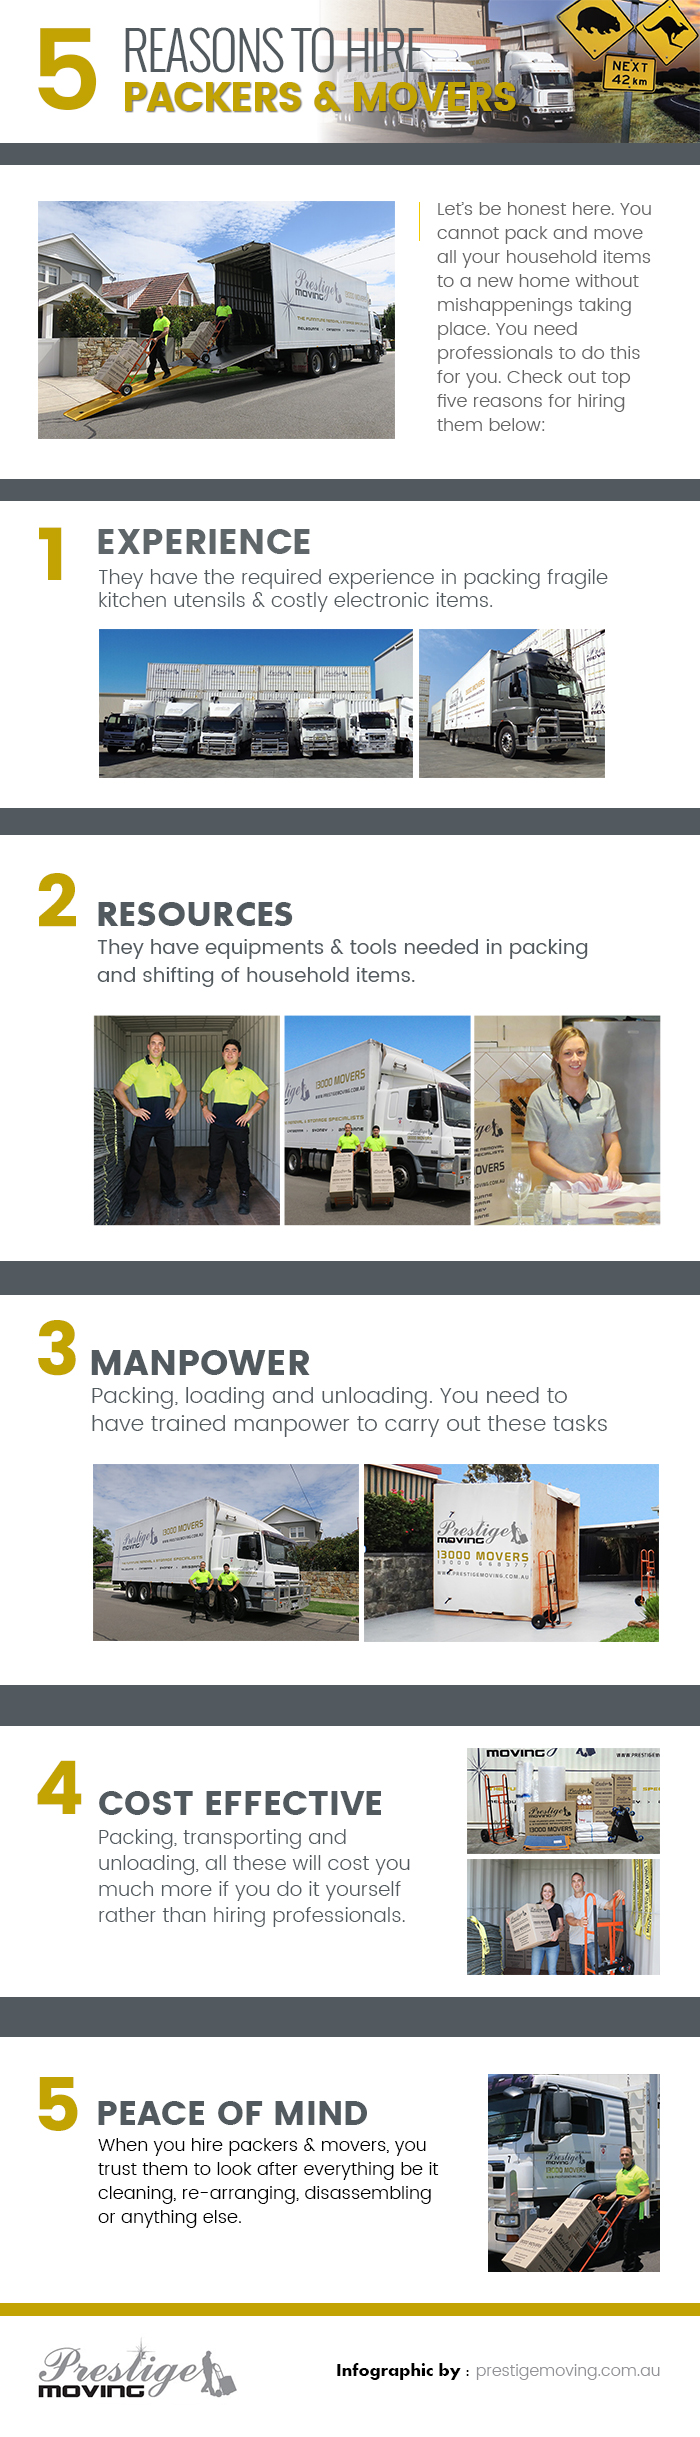 5 Reasons To Hire Packers and Movers